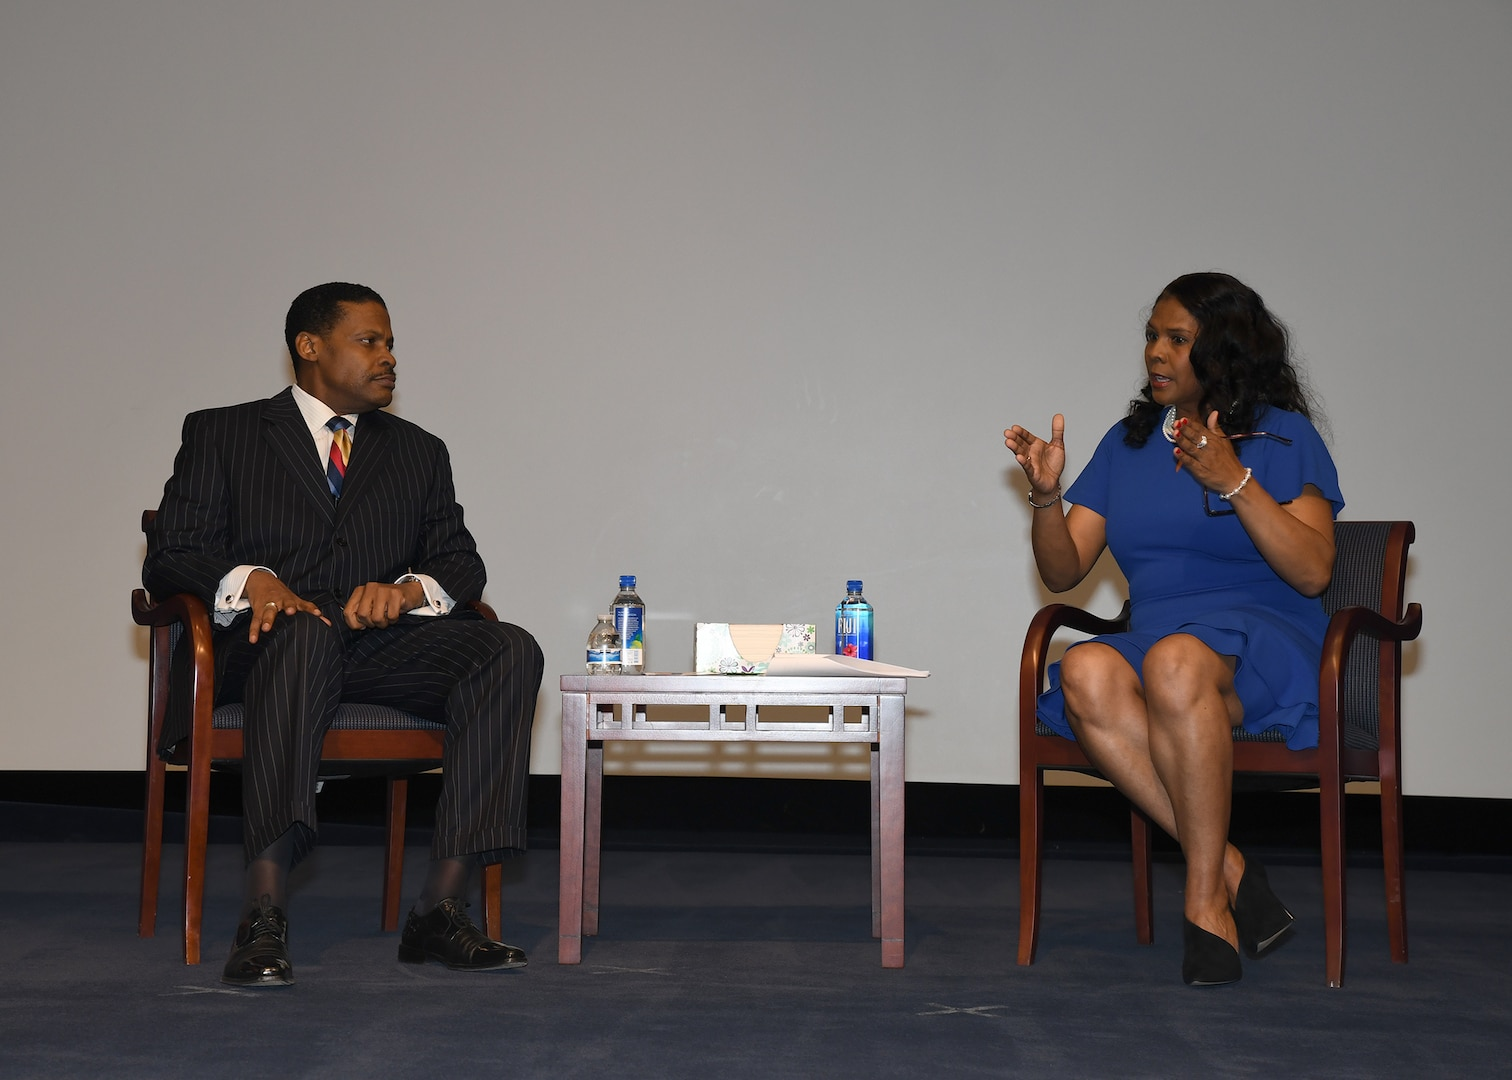 Man, woman seated on stage mid-discussion